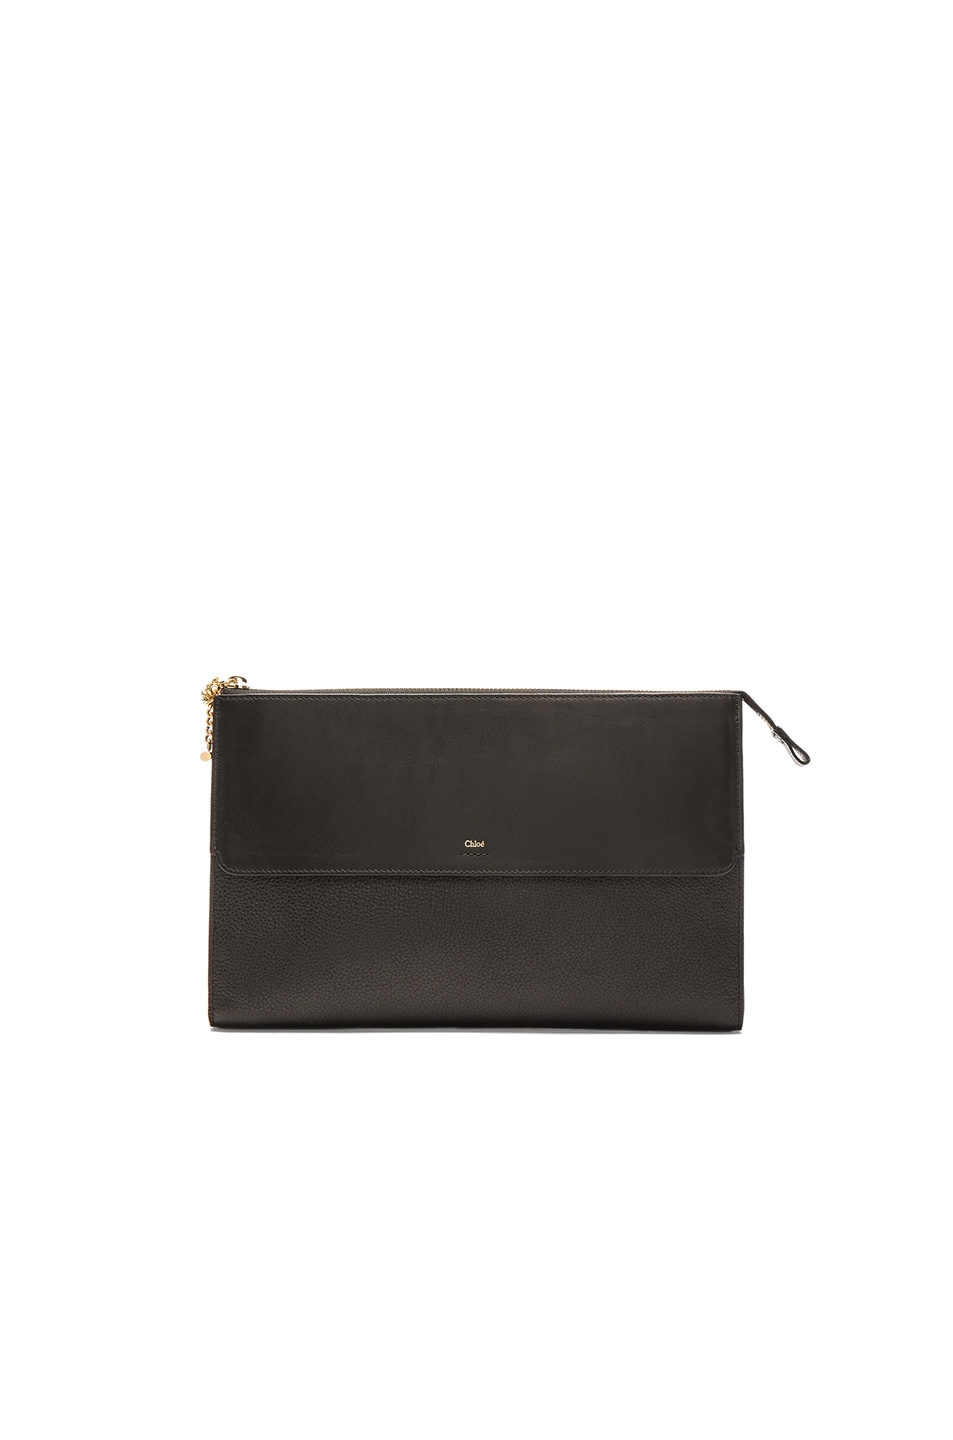 Image 1 of Chloe Grained Leather Flat Pouch in Black